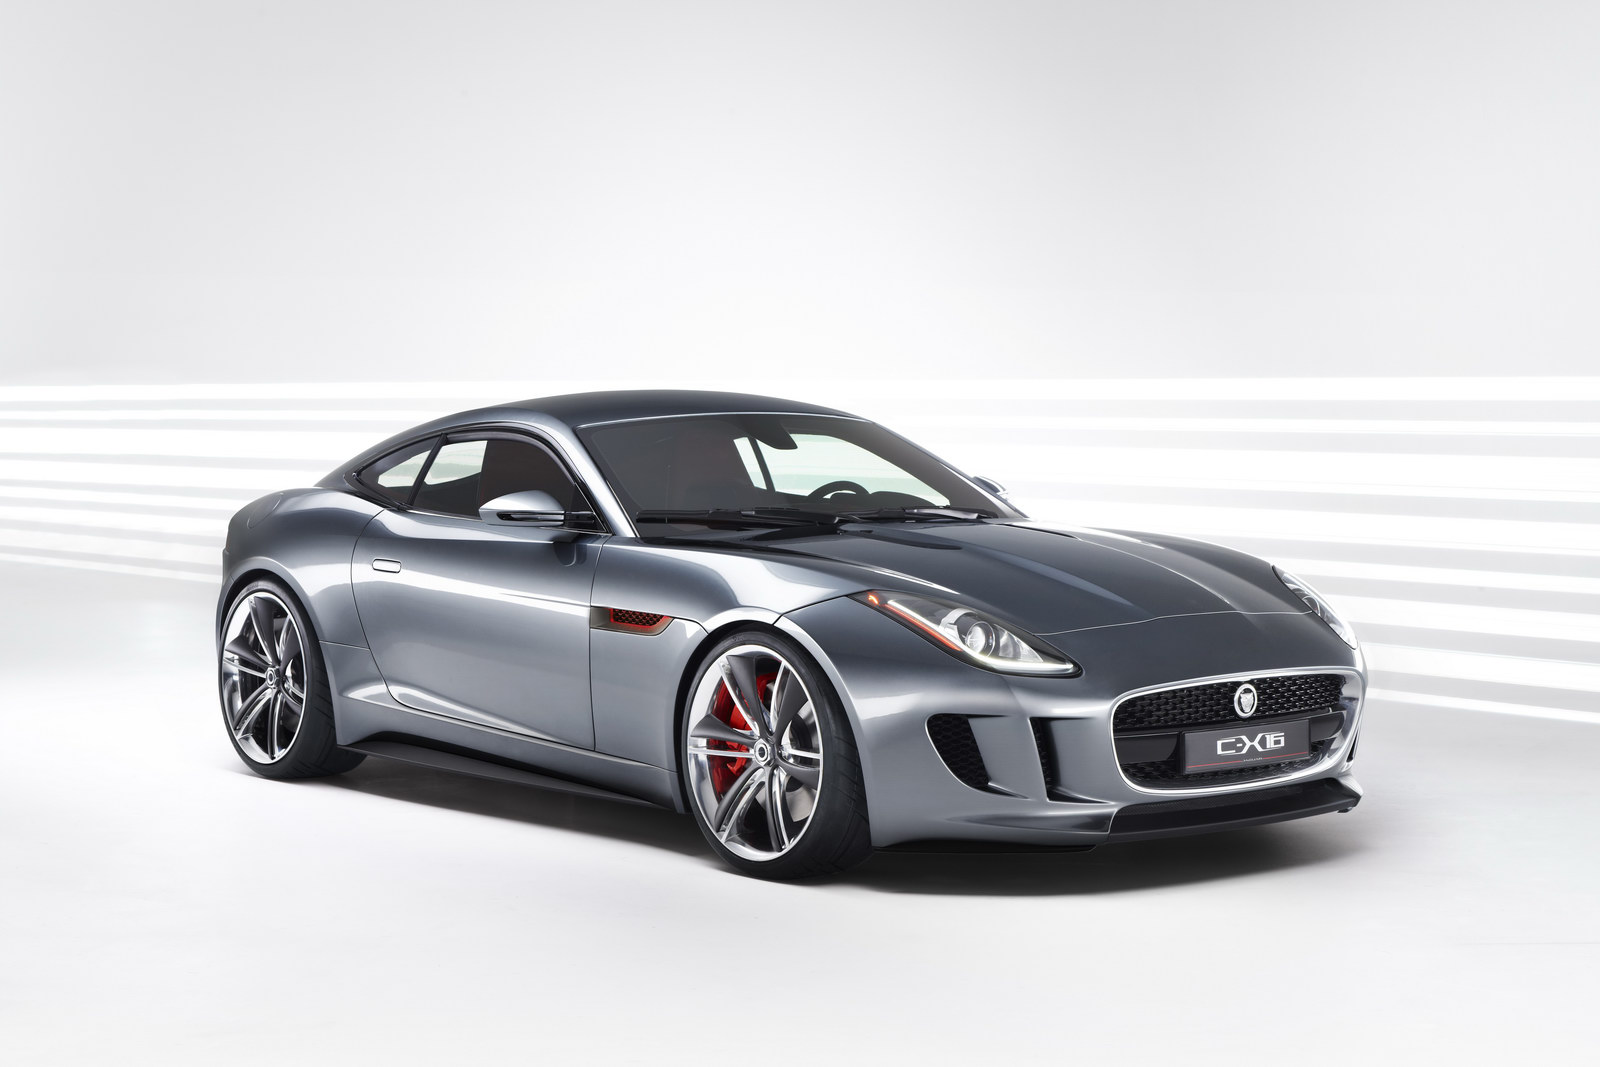 2011 JAGUAR C X16 Production Concept 1 All New 2011 Jaguar C X16 edition looks like Porsche Cayman and 911 Rival